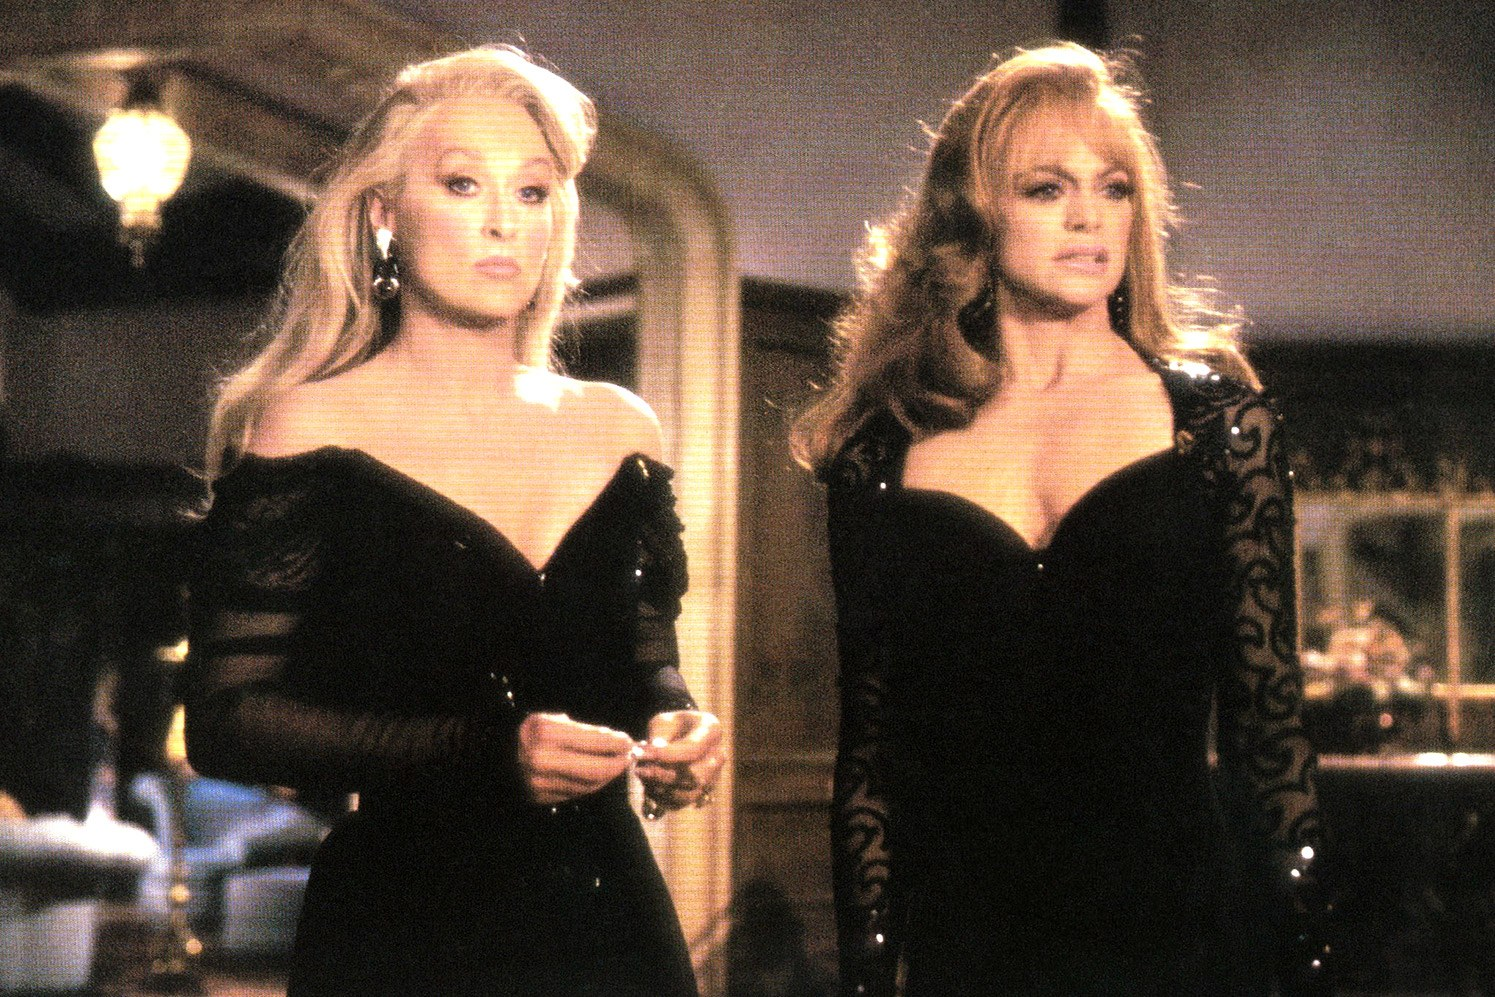 T death becomes her still 1